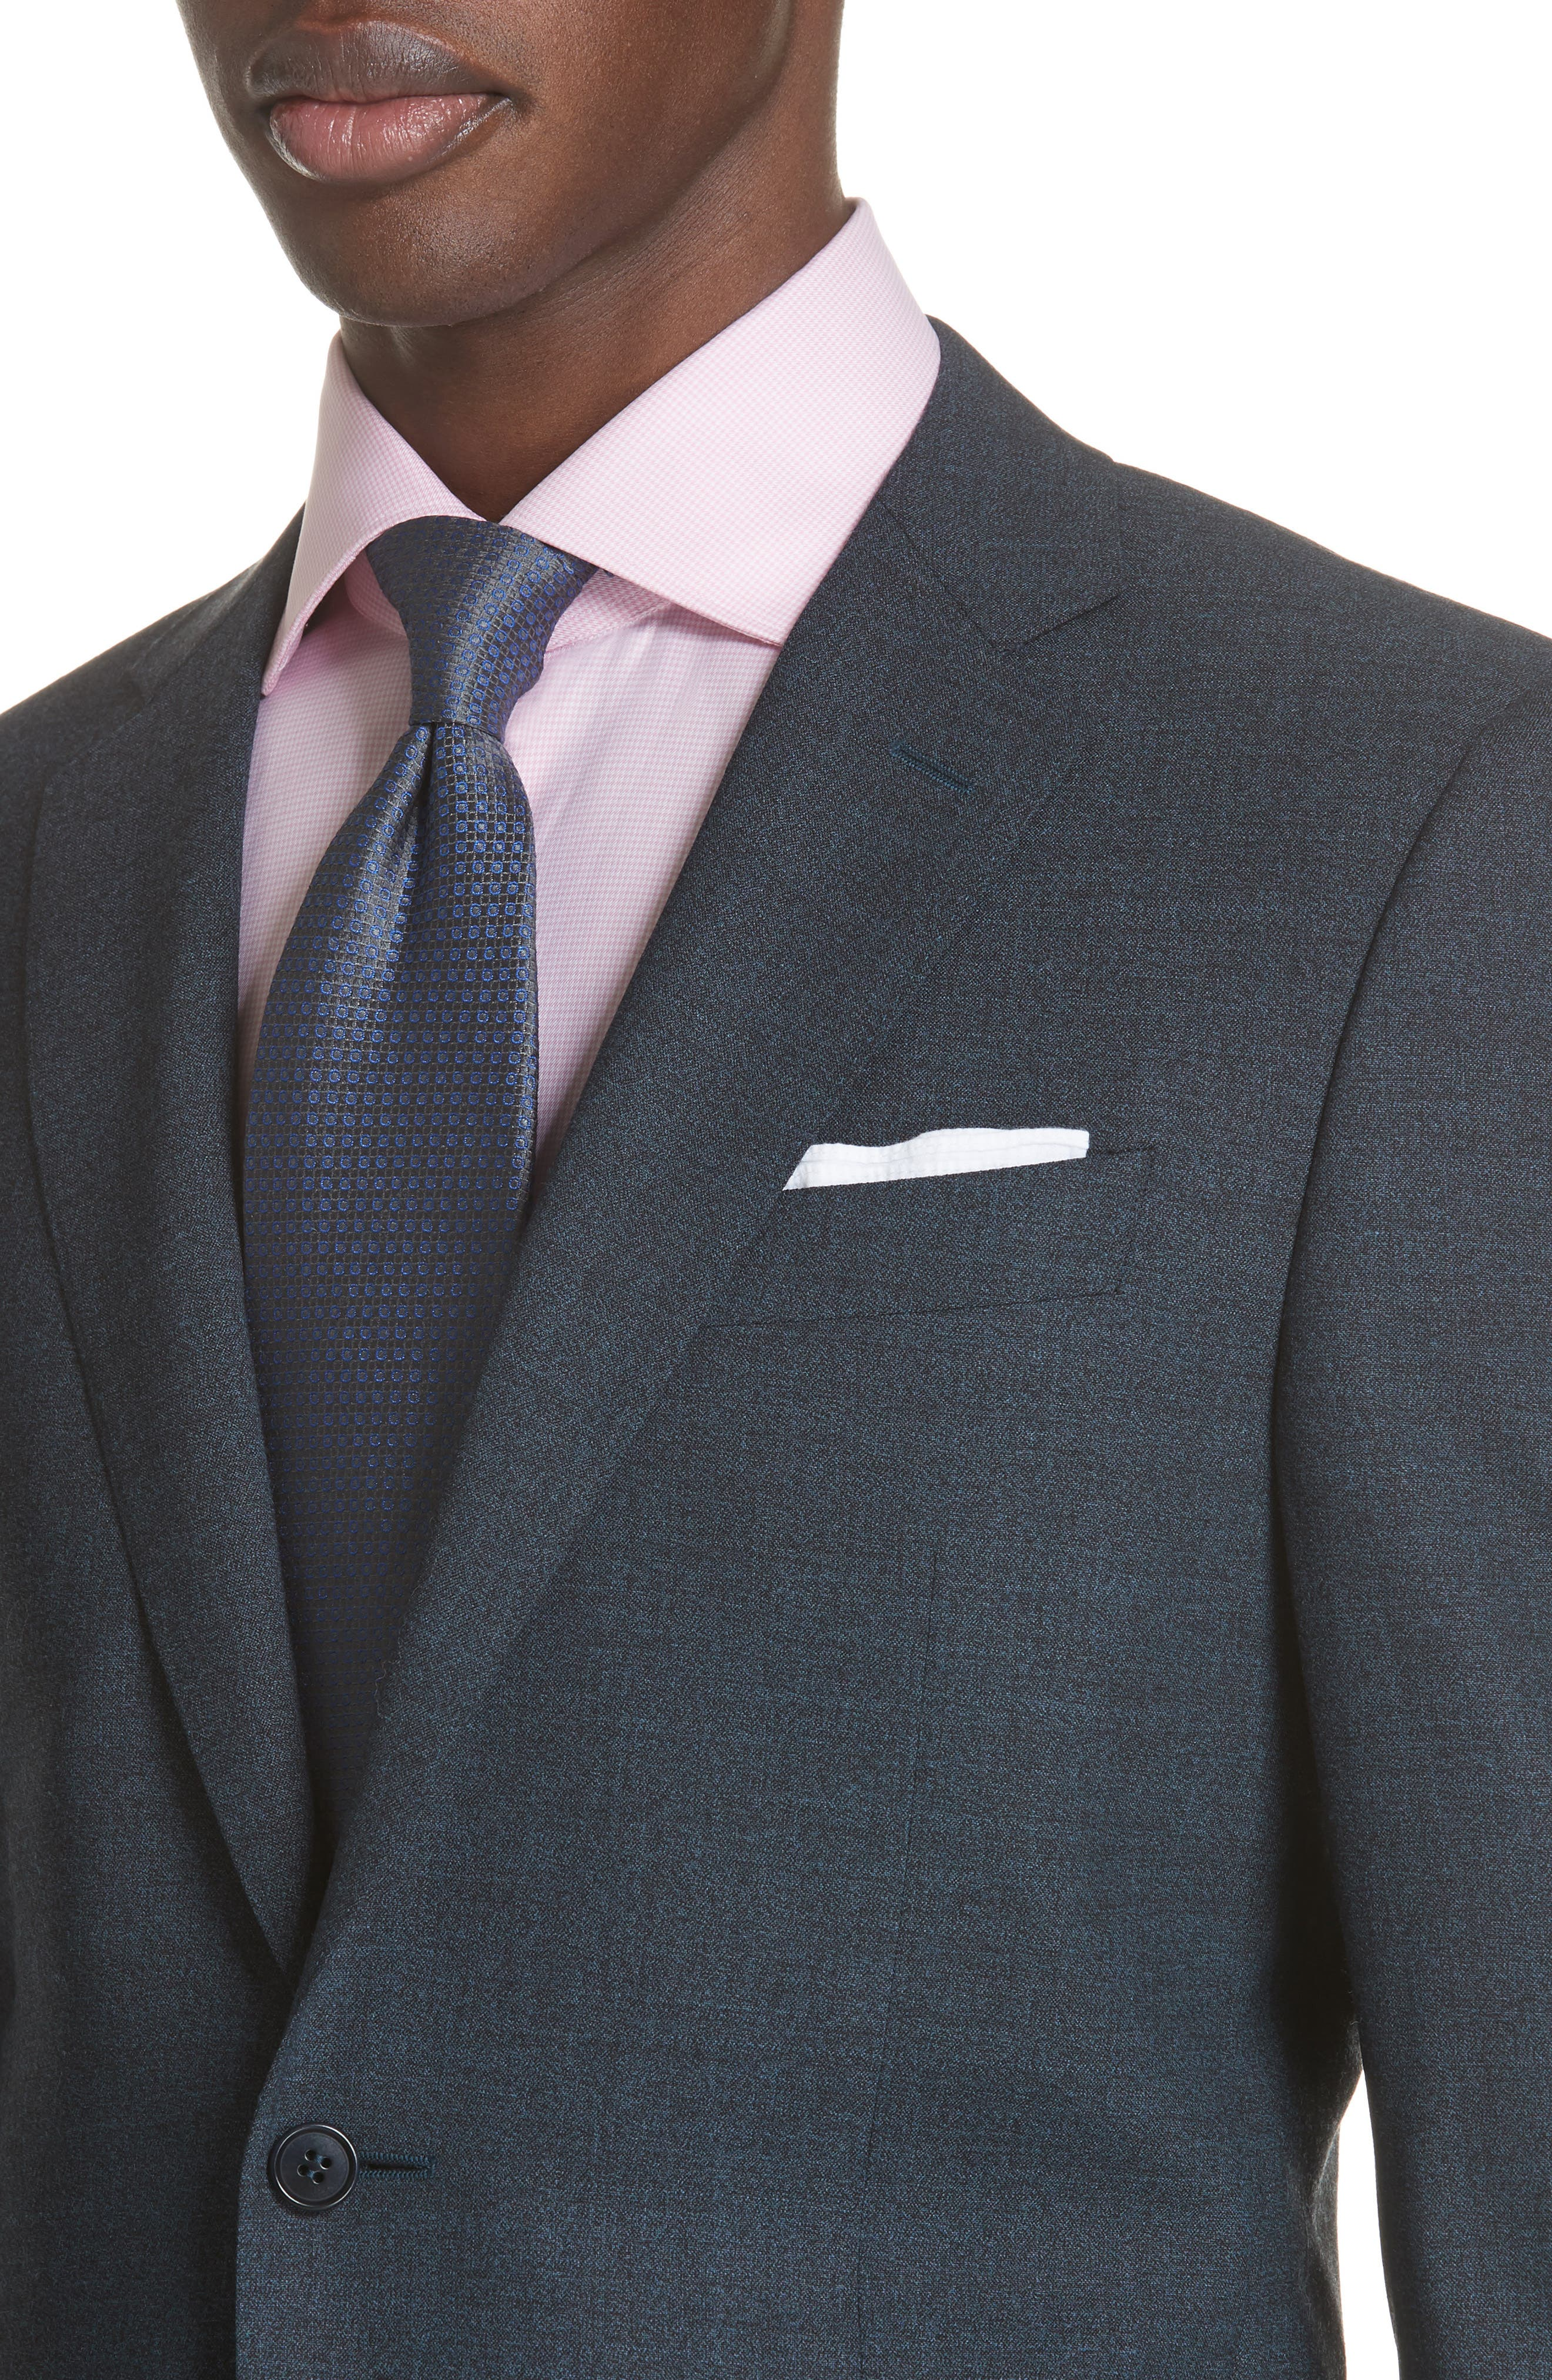 CANALI,                             Classic Fit Stretch Solid Wool Suit,                             Alternate thumbnail 4, color,                             400